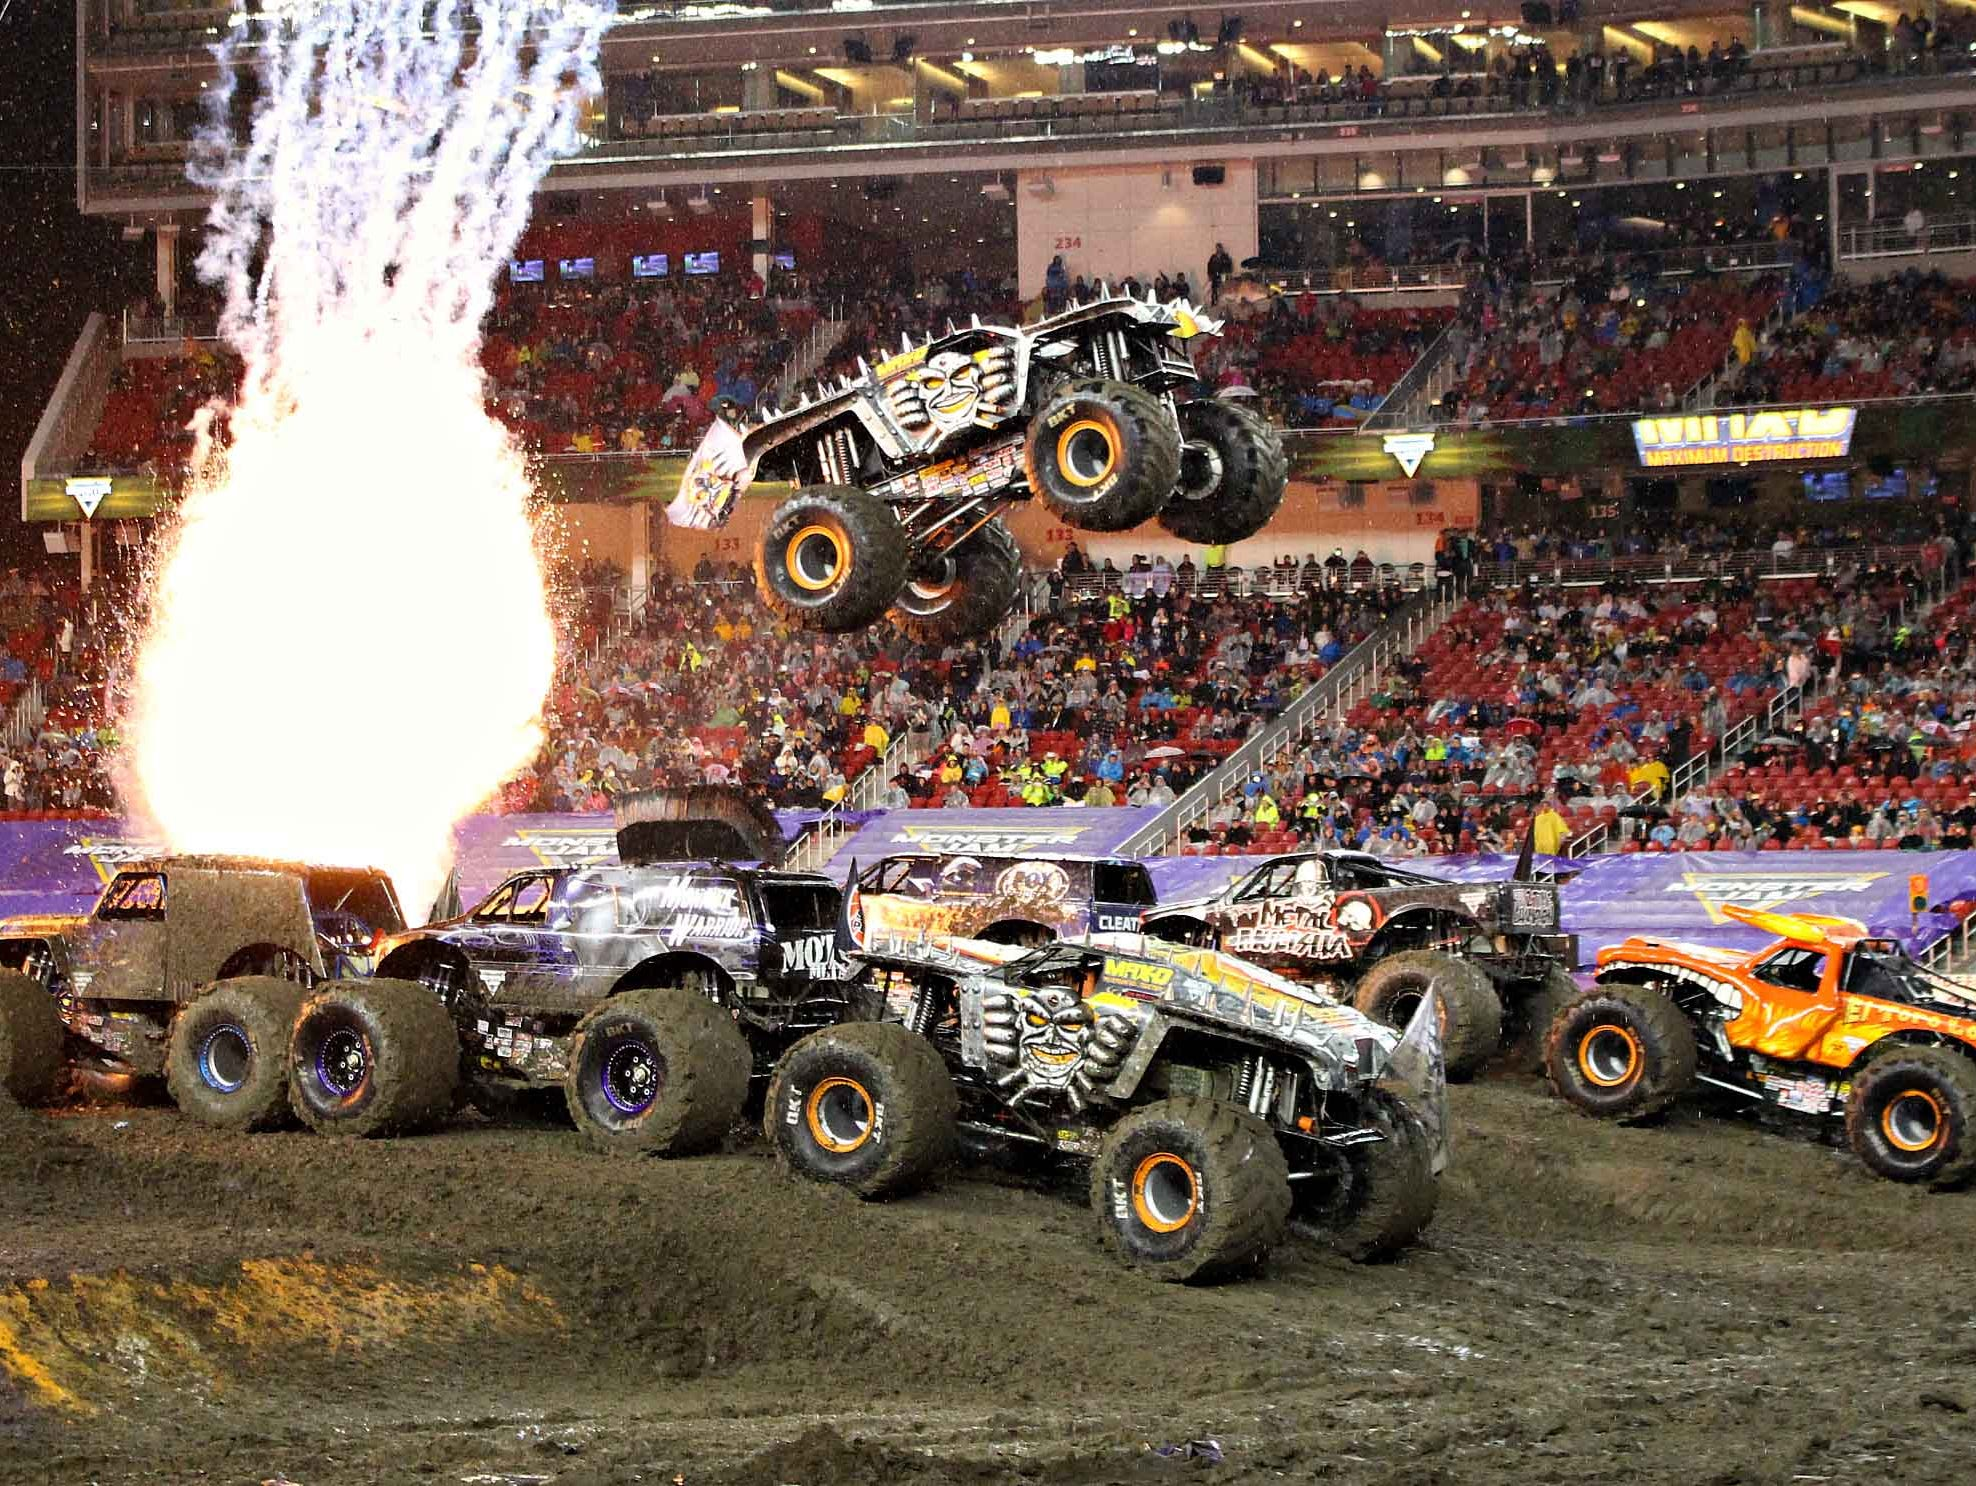 Purchase discounted tickets to Monster Jam at Nissan Stadium on June 23rd.